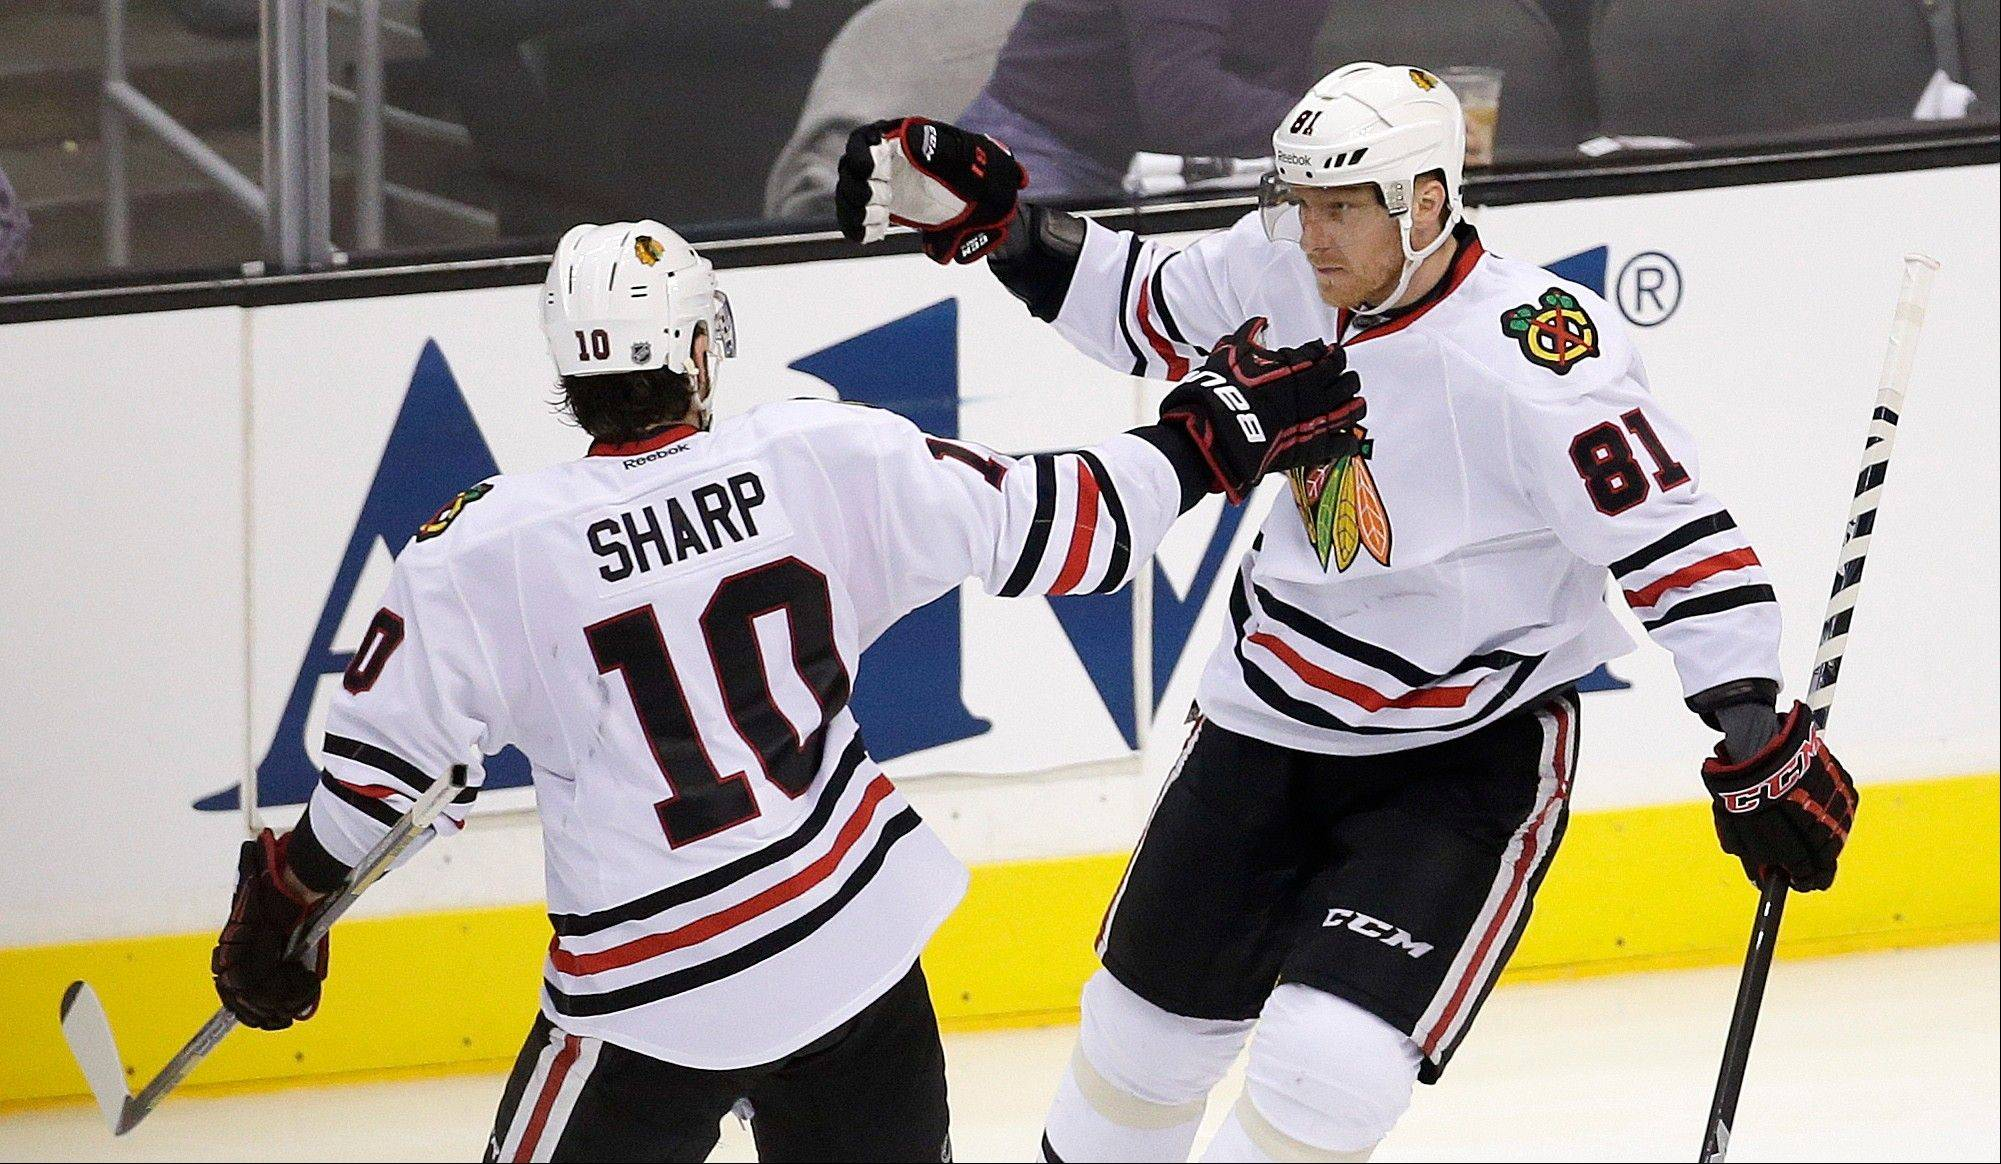 Hossa hoping to play in Hawks' opener